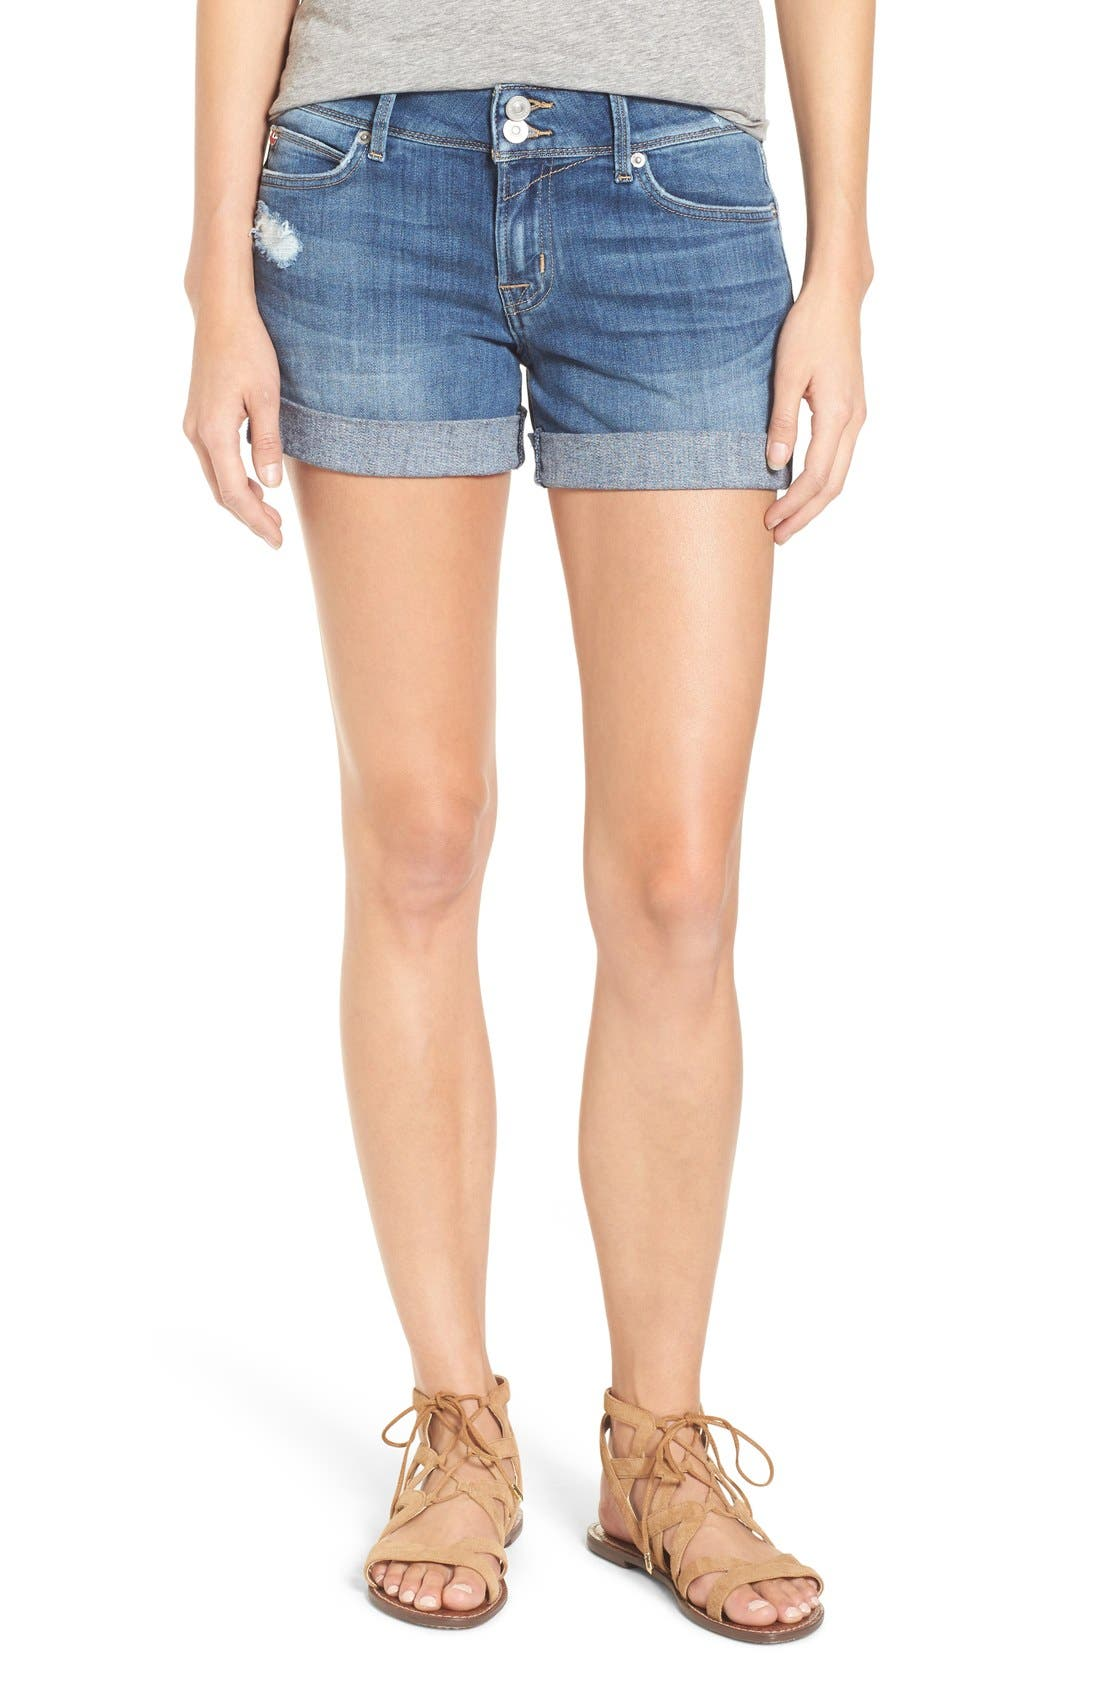 Alternate Image 1 Selected - Hudson Jeans 'Croxley' Cuffed Denim Shorts (Paramour)